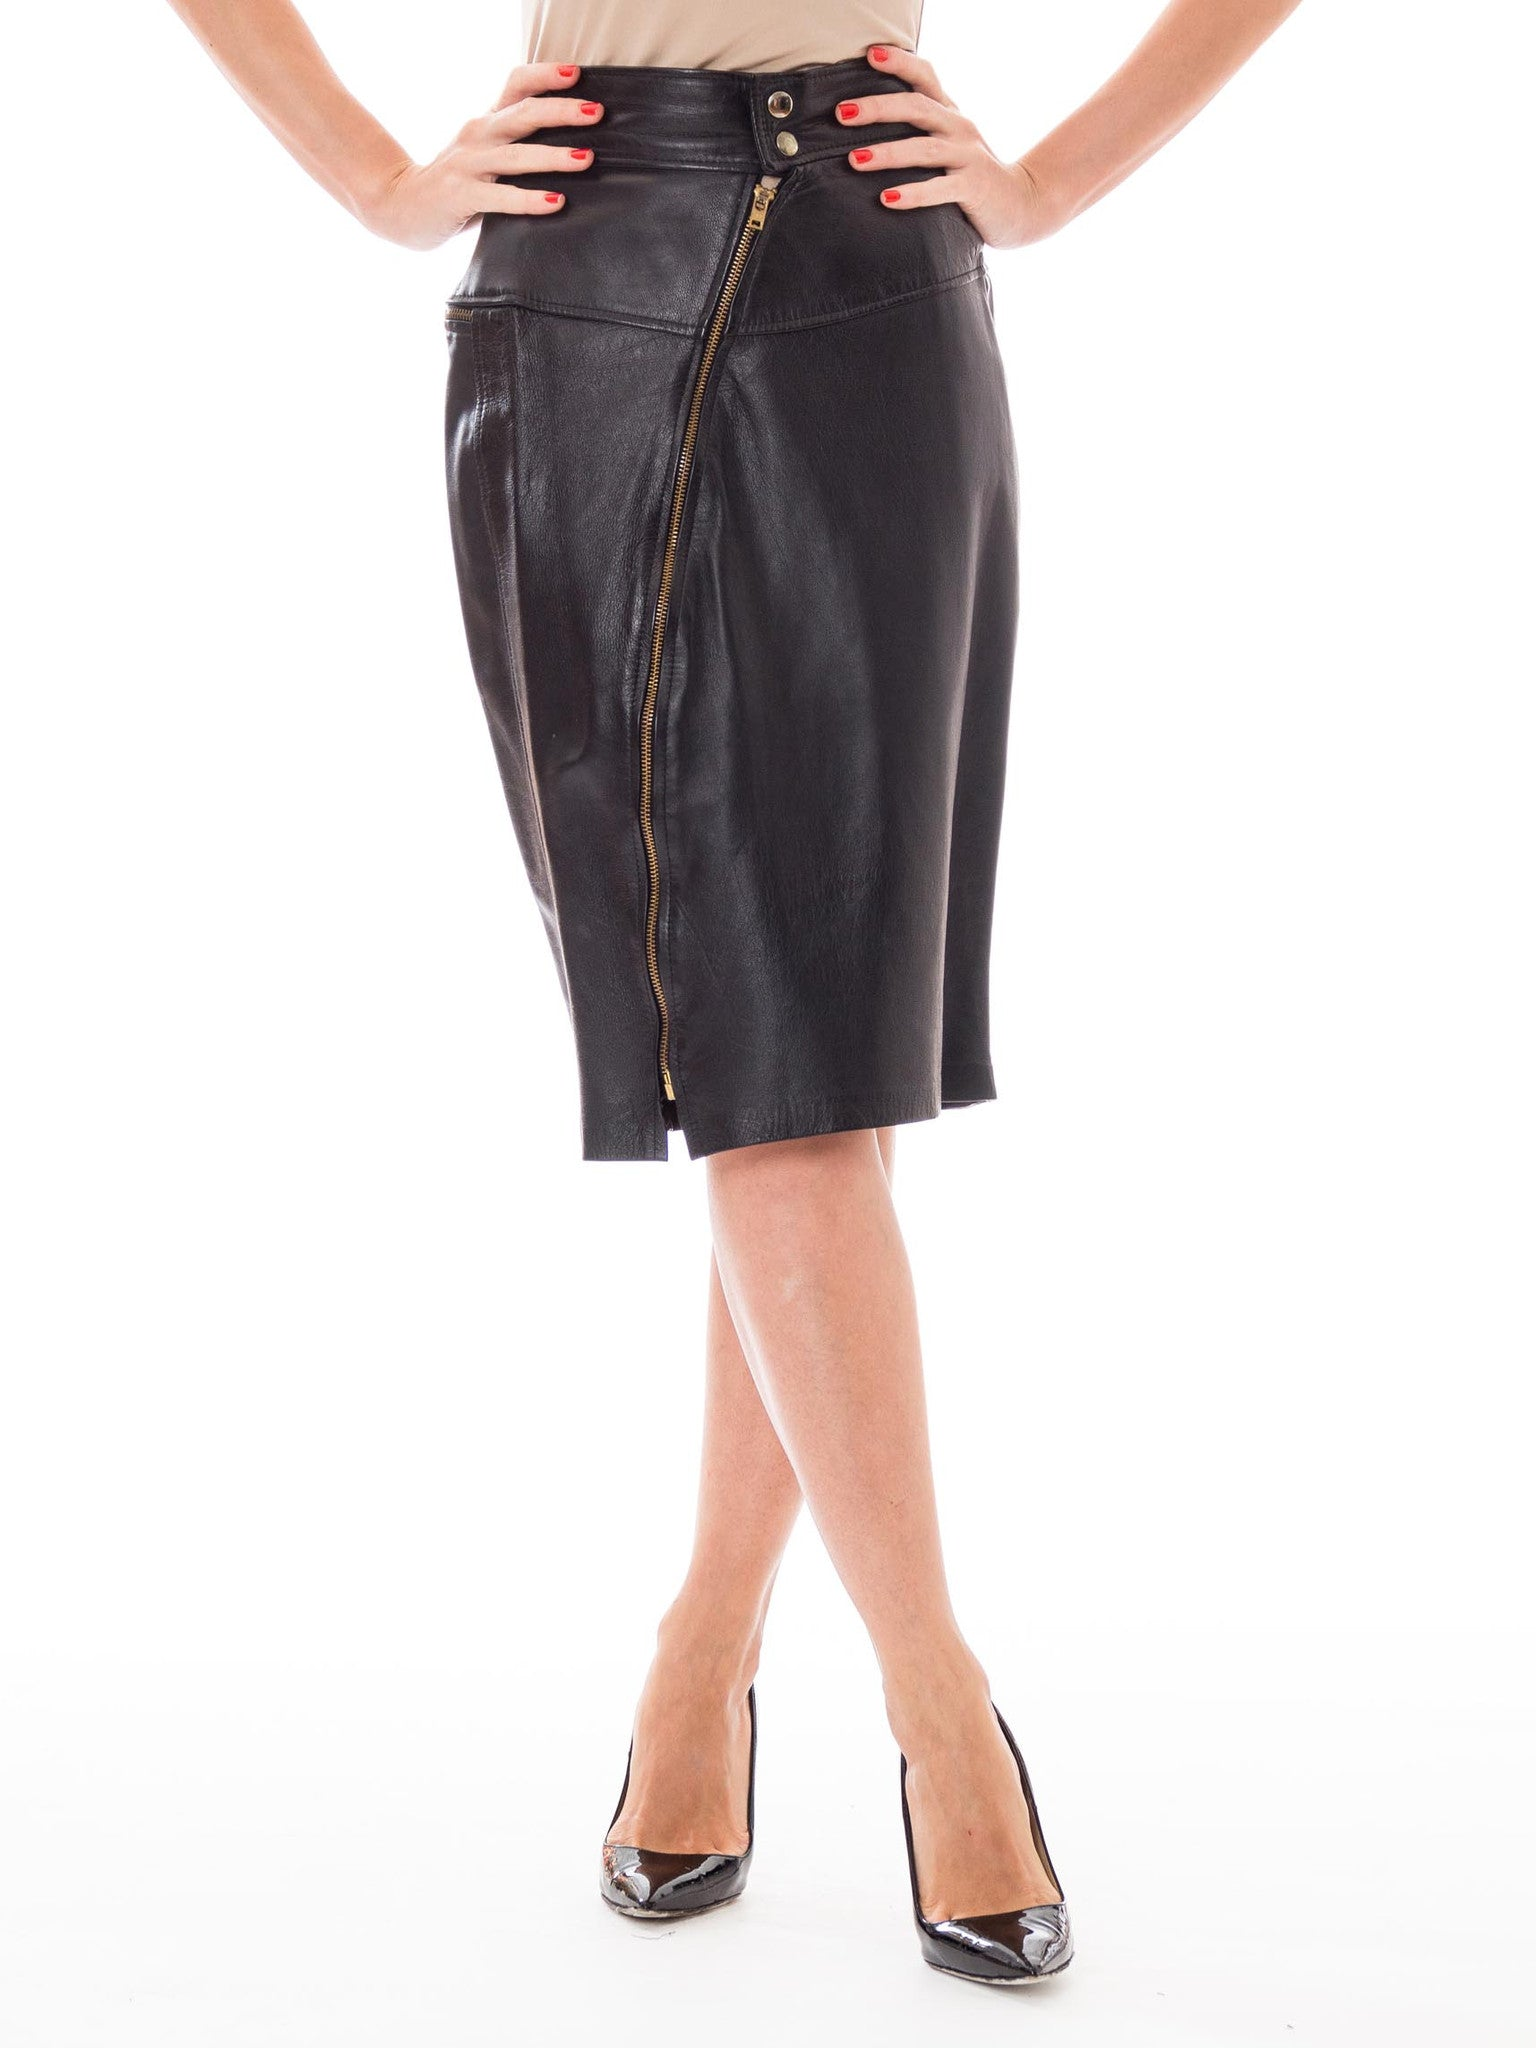 0e53197b46c8 1980s Black Leather Biker Chick High Waisted Pencil Skirt with Diagonal  Zipper